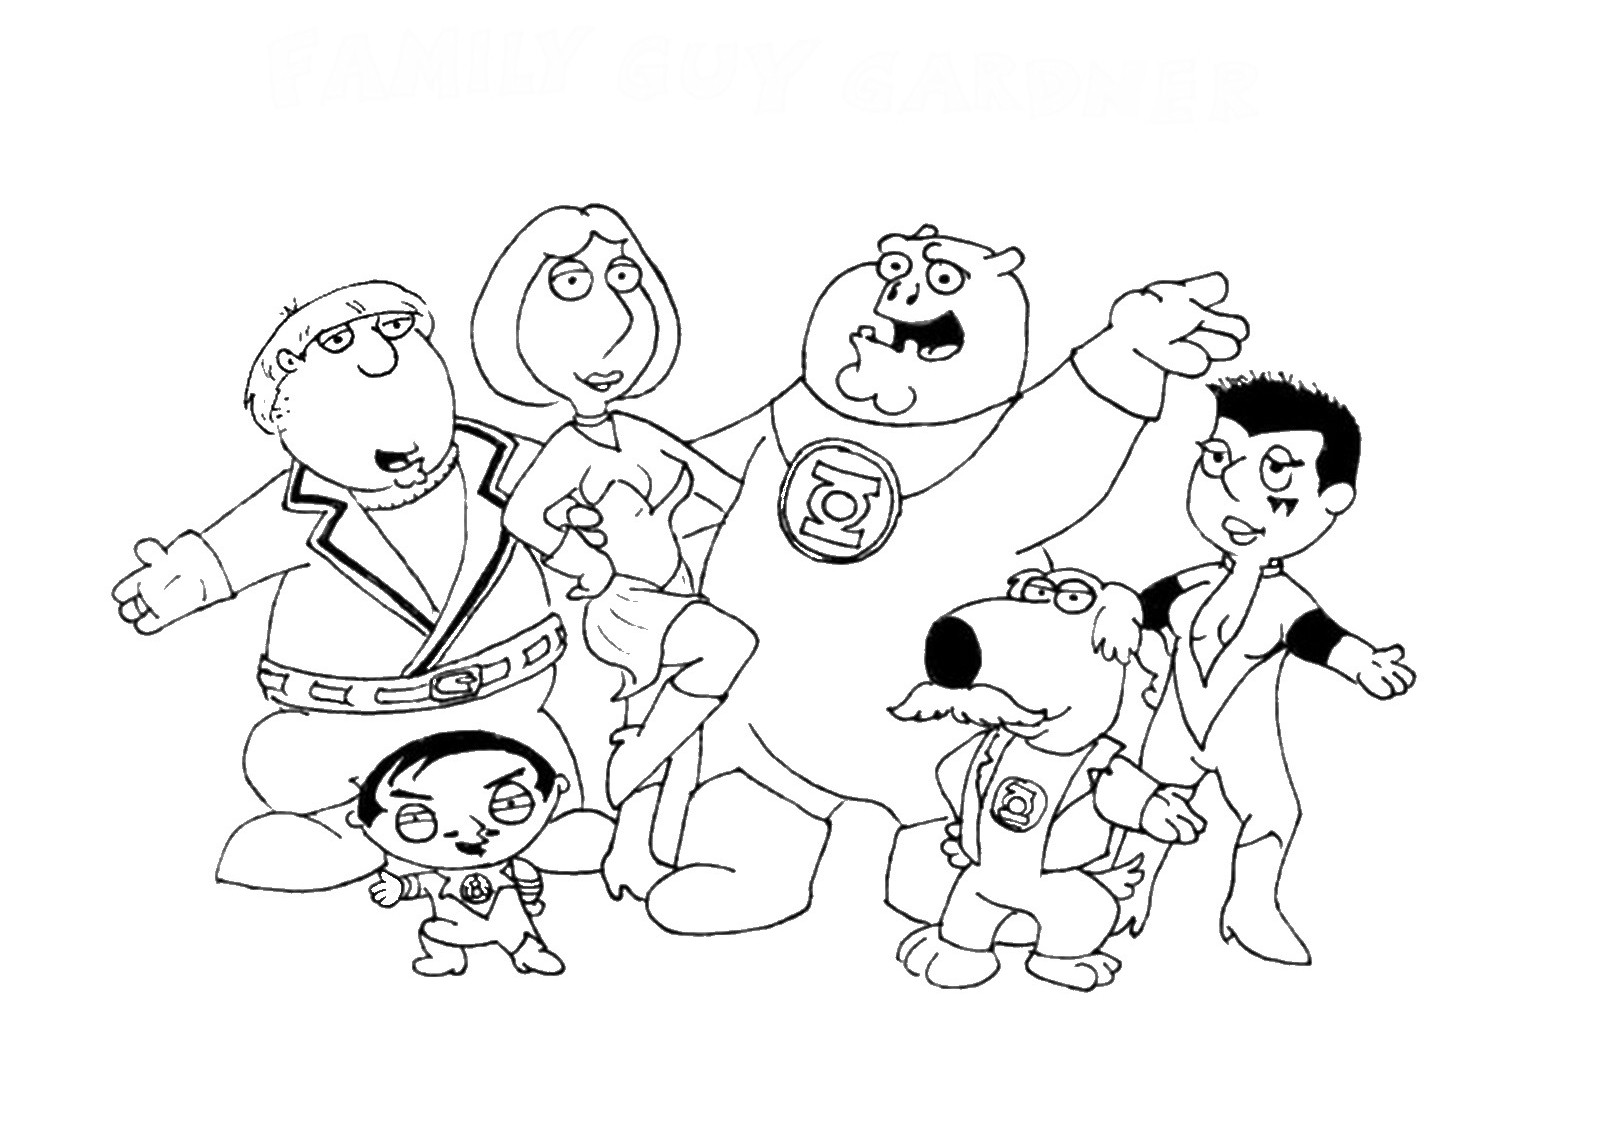 family guy coloring pages - lois griffin coloring pages hot girls wallpaper